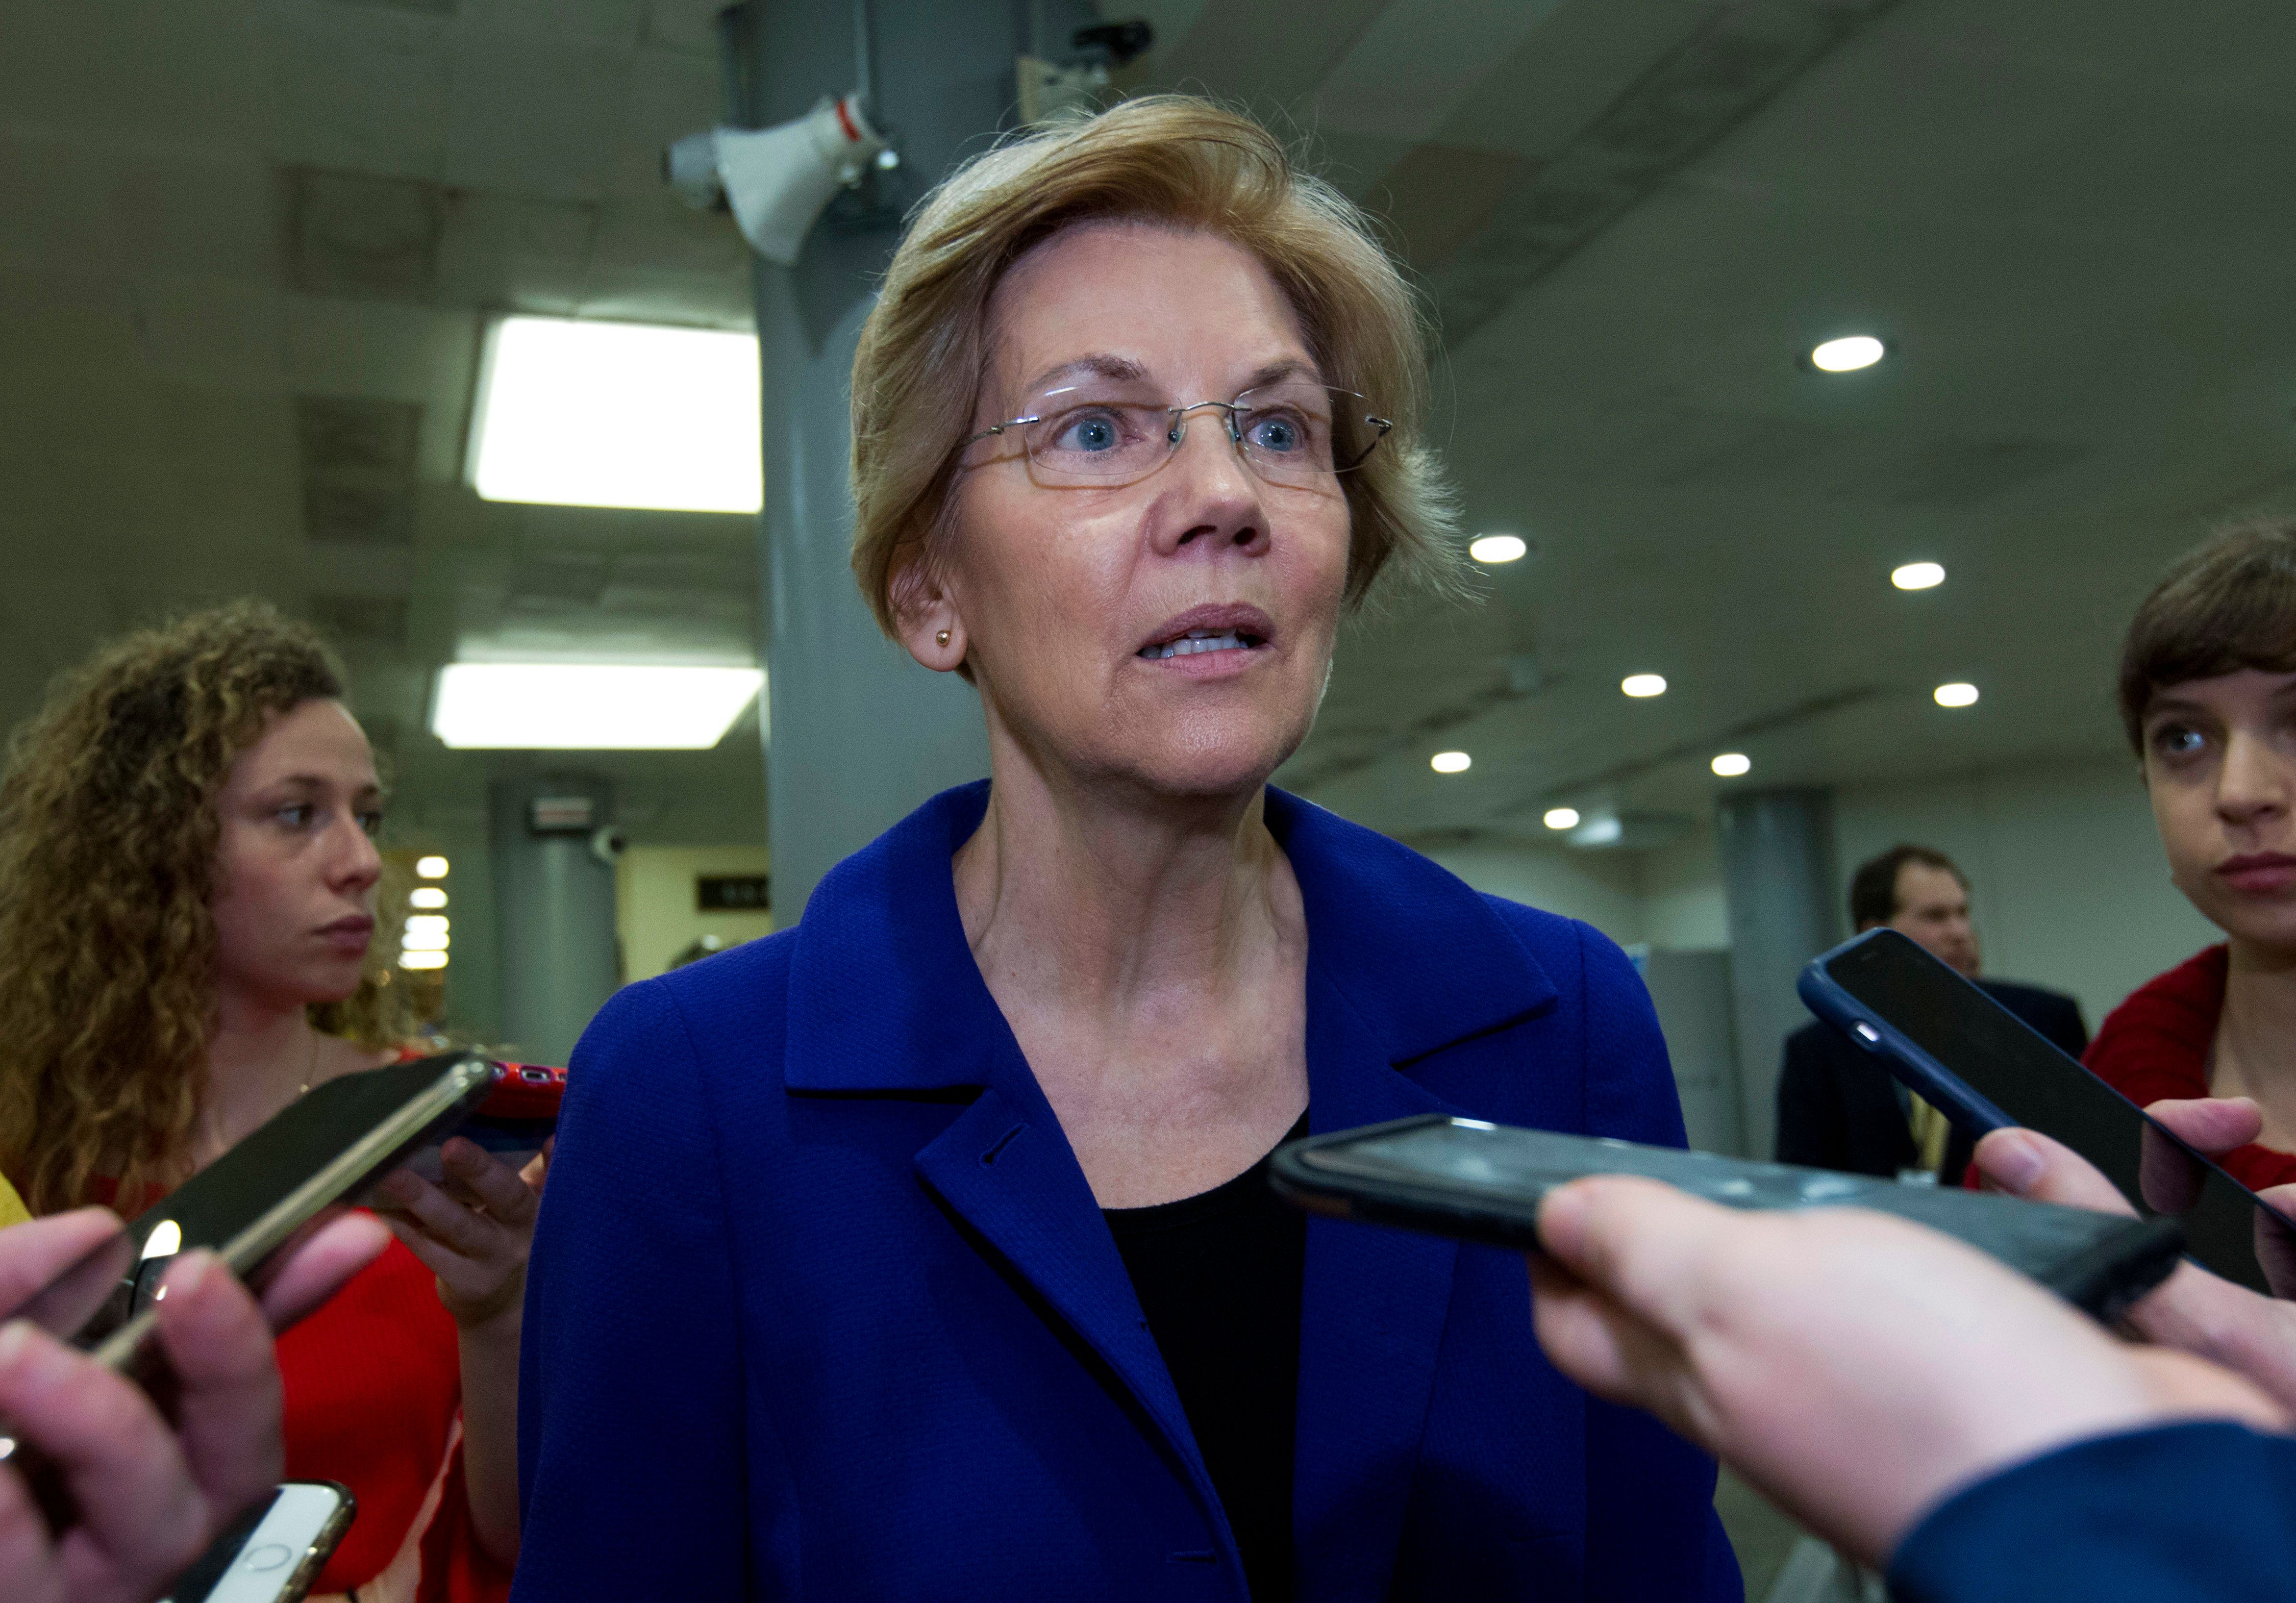 Elizabeth Warren Identified Herself As 'American Indian' On Texas Bar